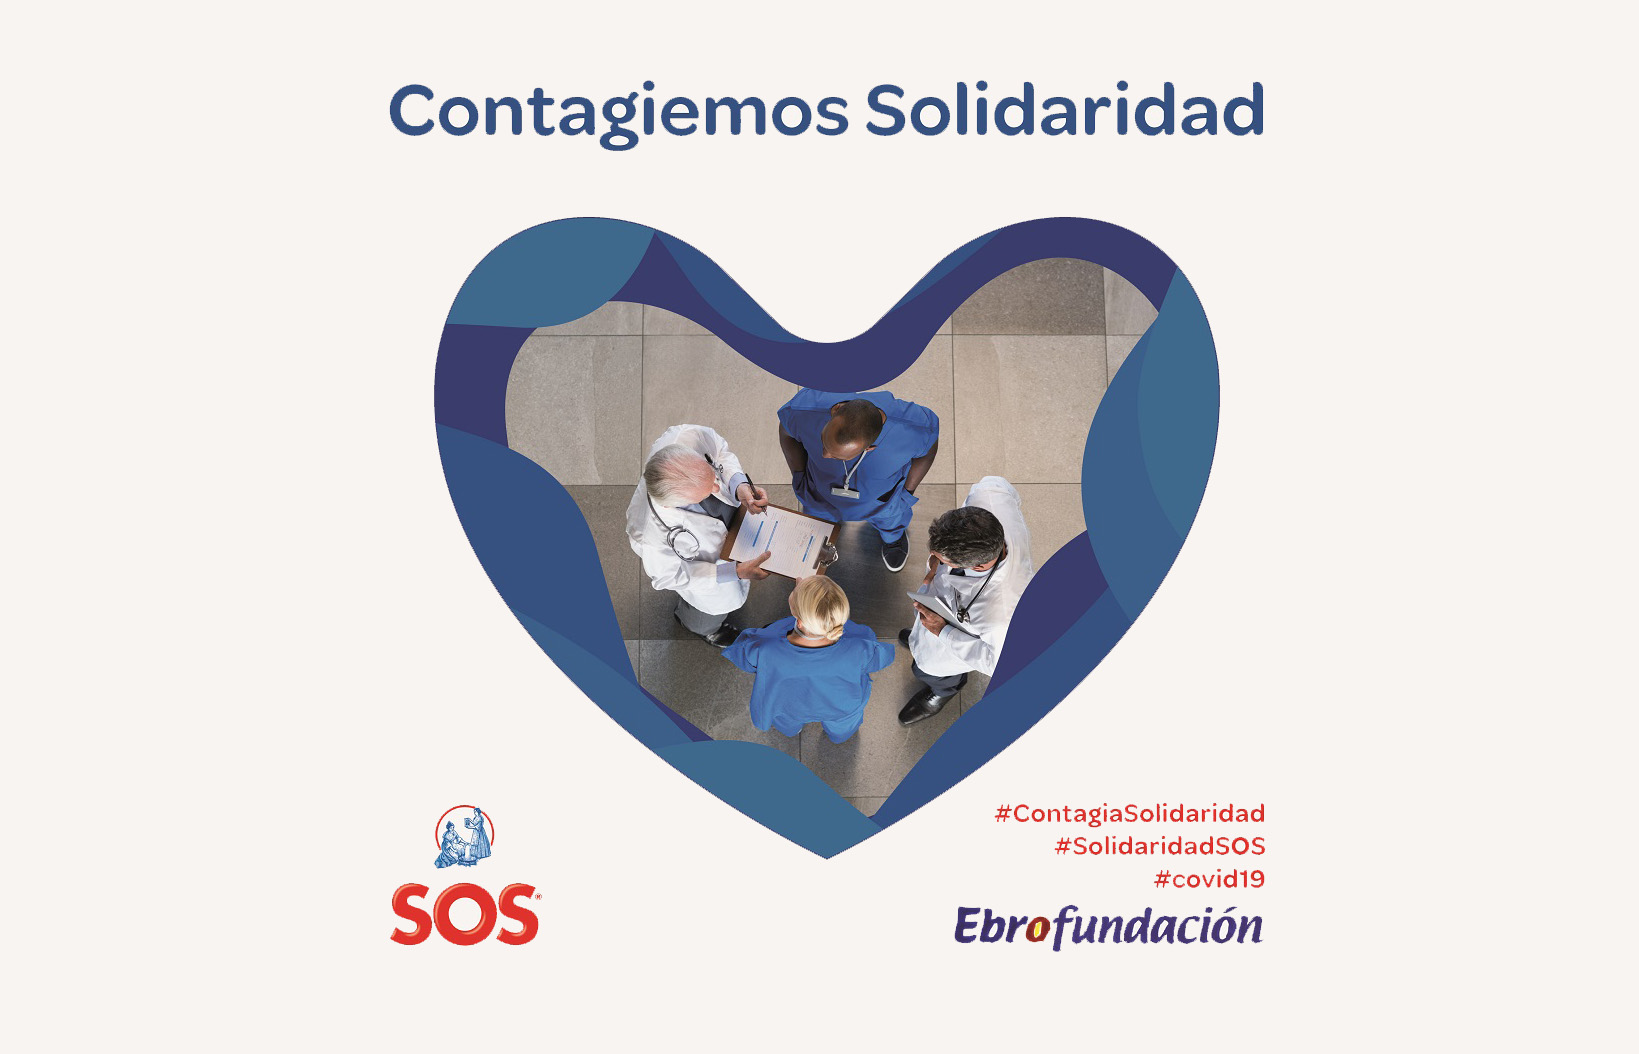 Ebro channels one million euros through its Arroz SOS brand for the battle against Covid-19